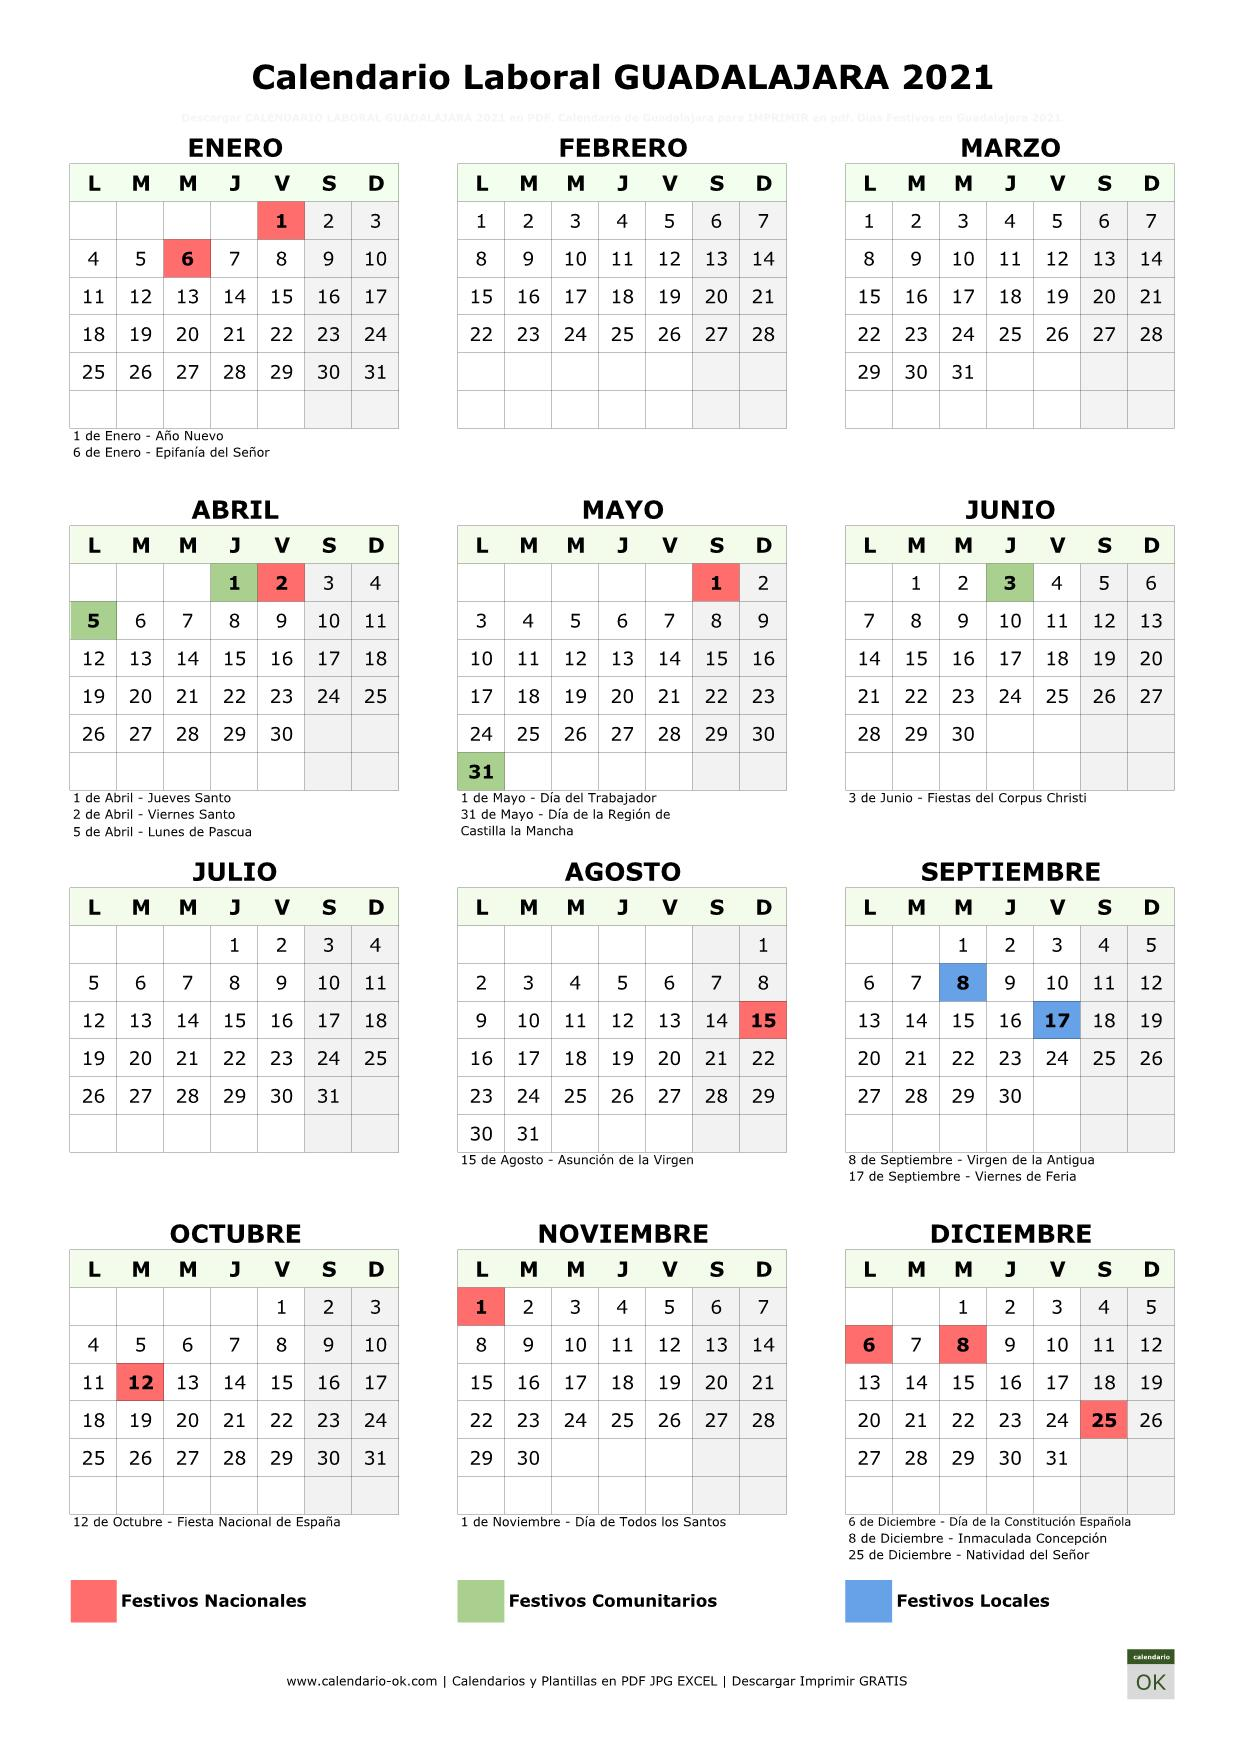 Calendario Laboral Guadalajara 2021